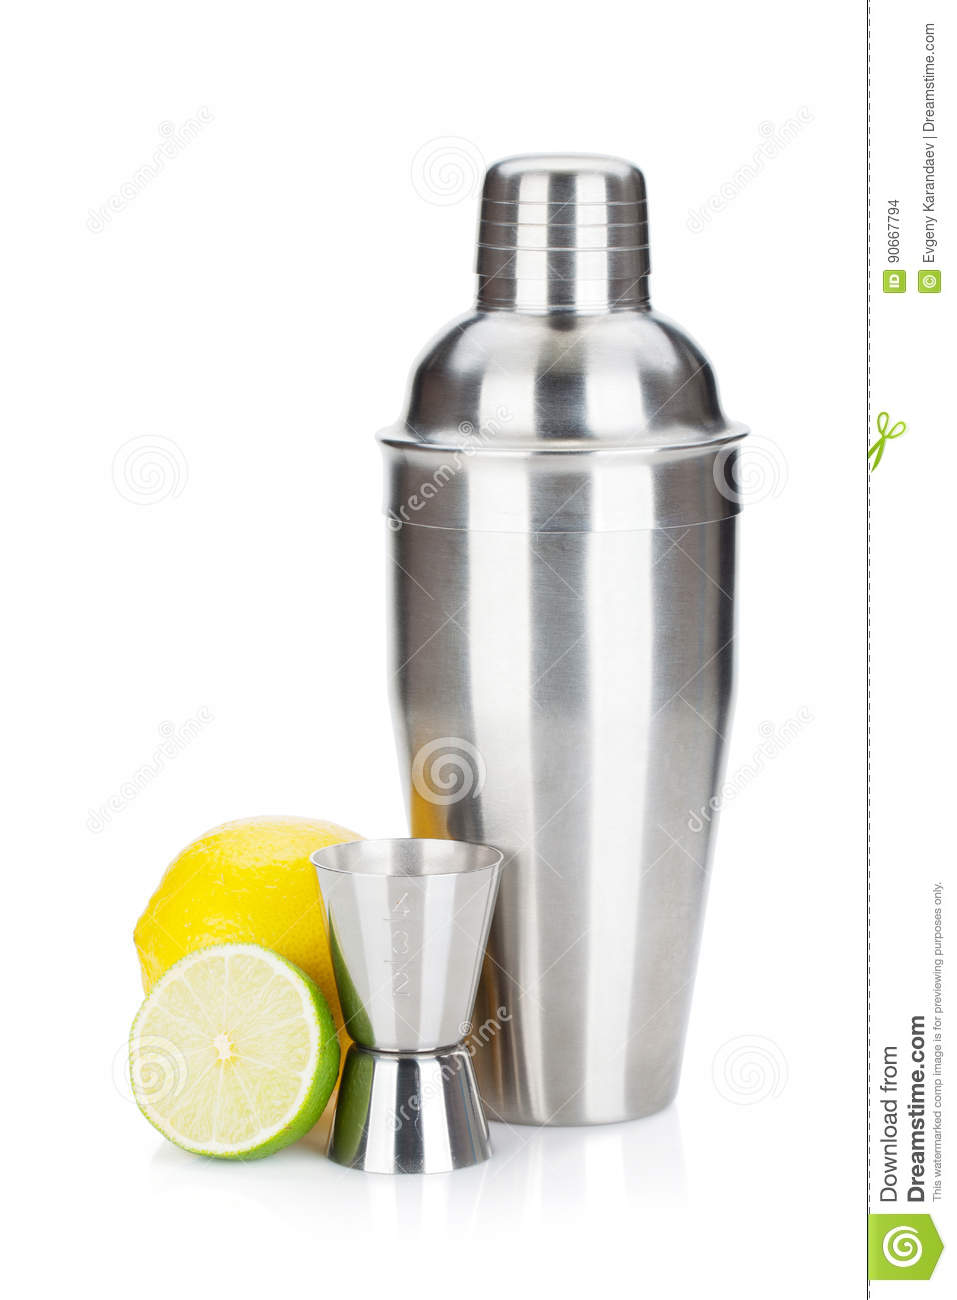 Cocktail shaker with measuring cup and citruses